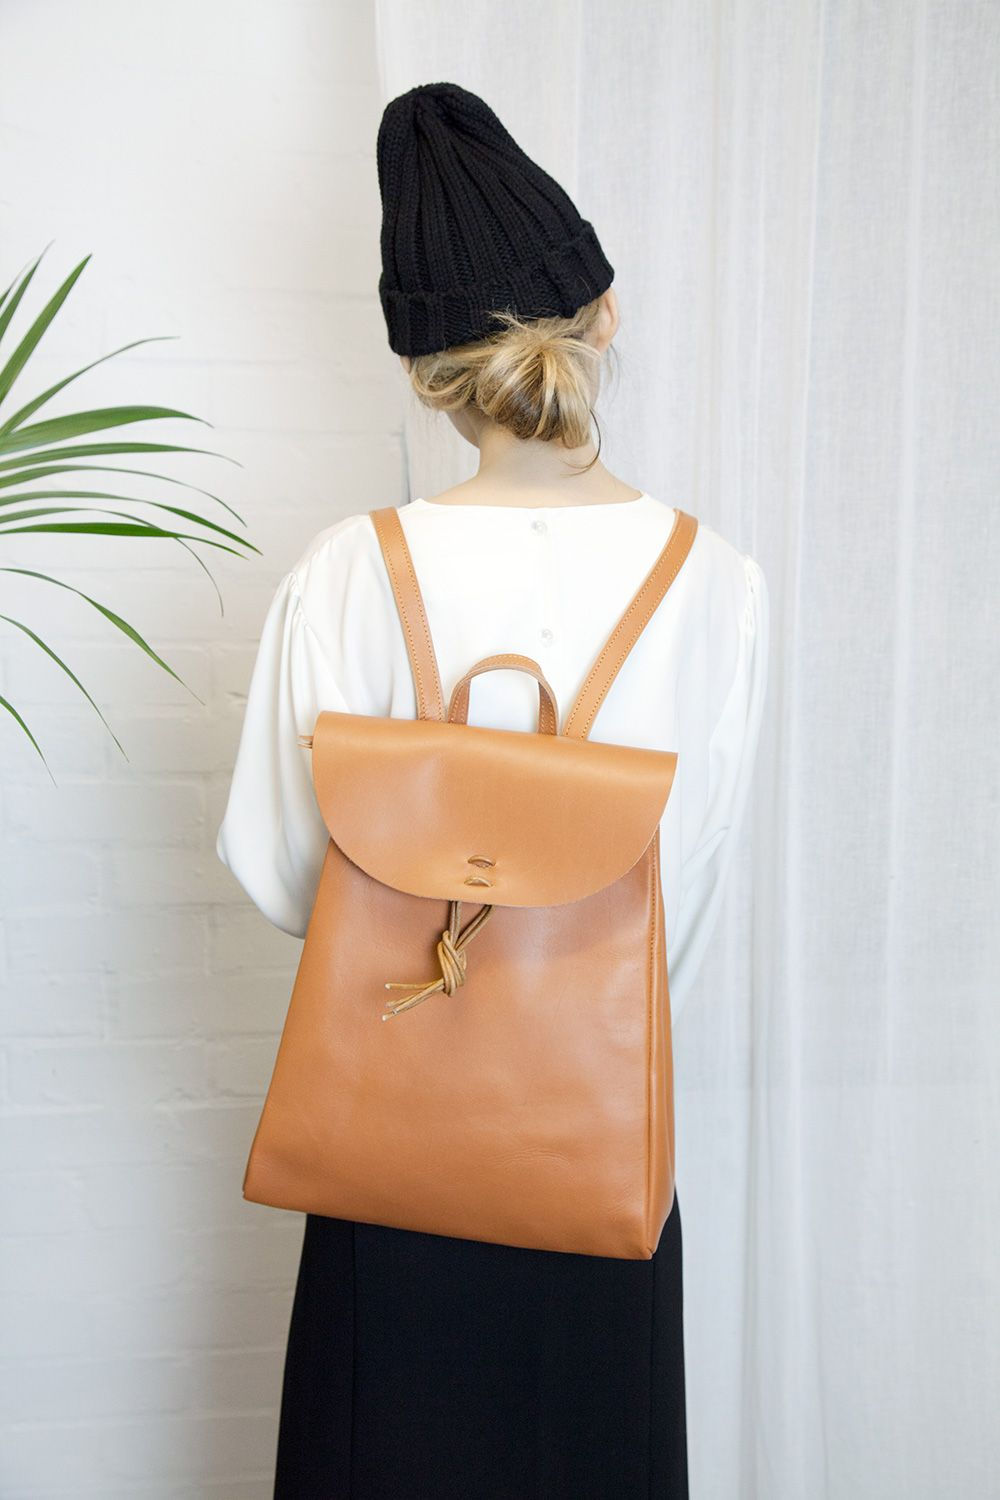 Vintage Style Hand Made Leather Backpack http://www.thewhitepepper.com/collections/bags/products/vintage-style-hand-made-leather-backpack